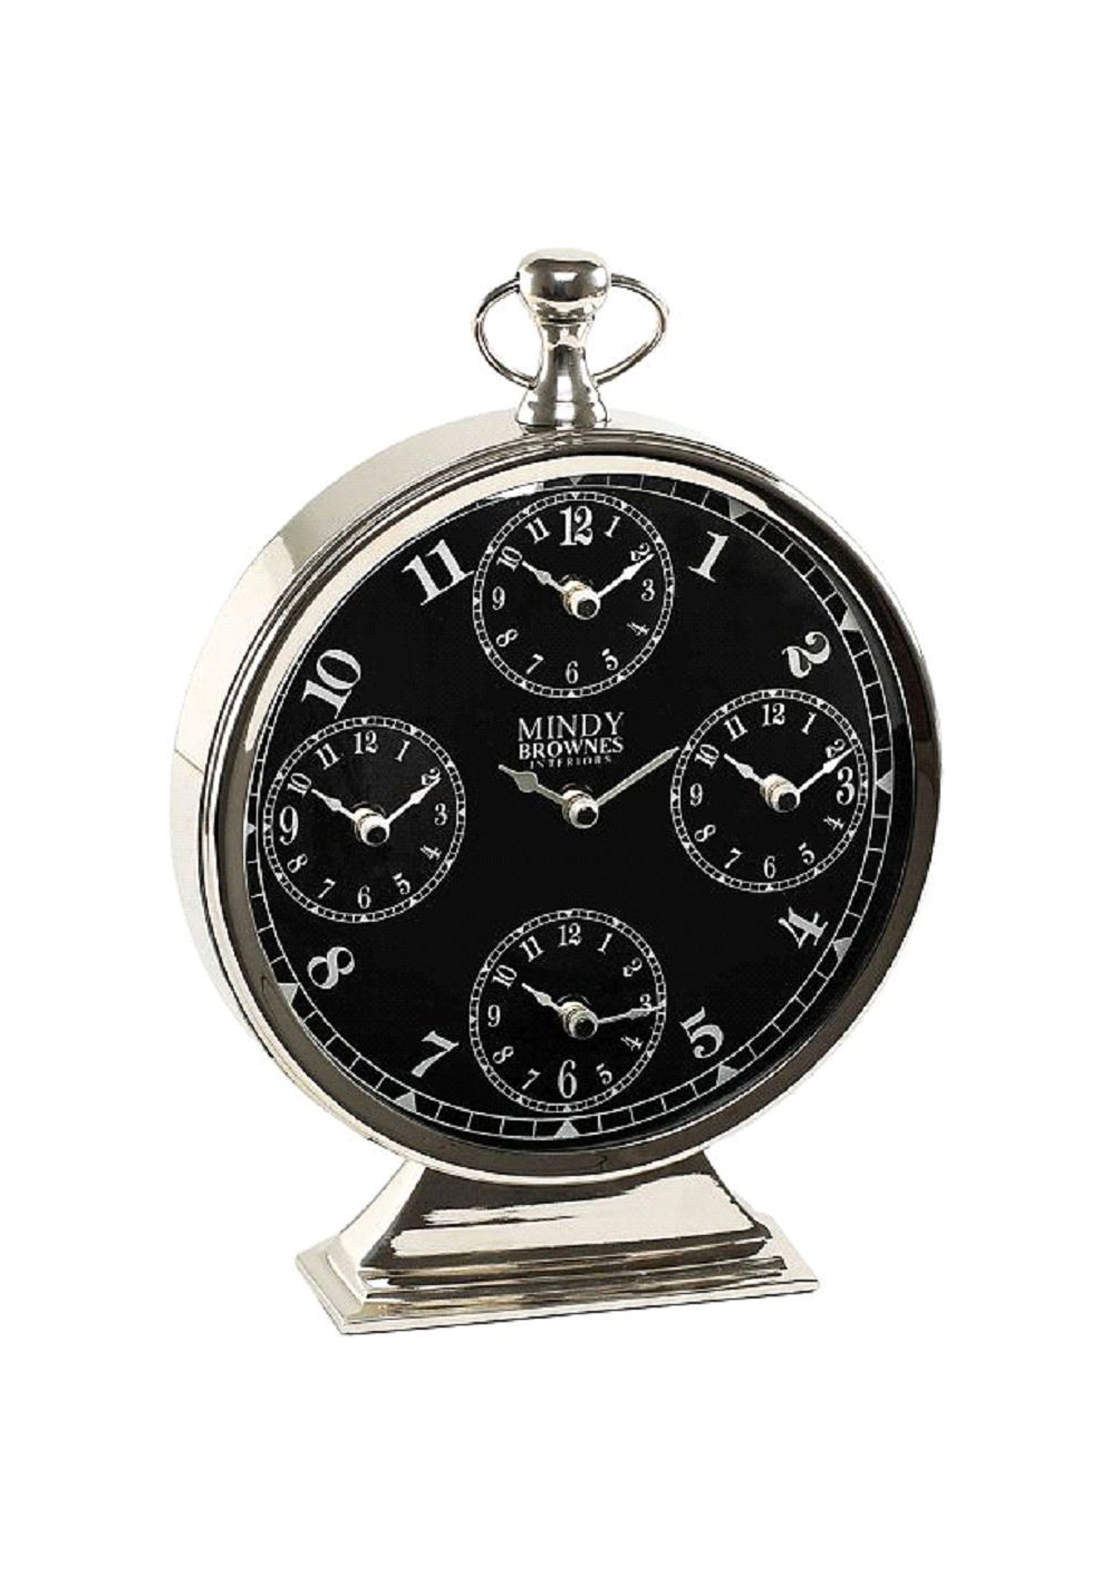 Mindy Brownes Berkley Table Clock